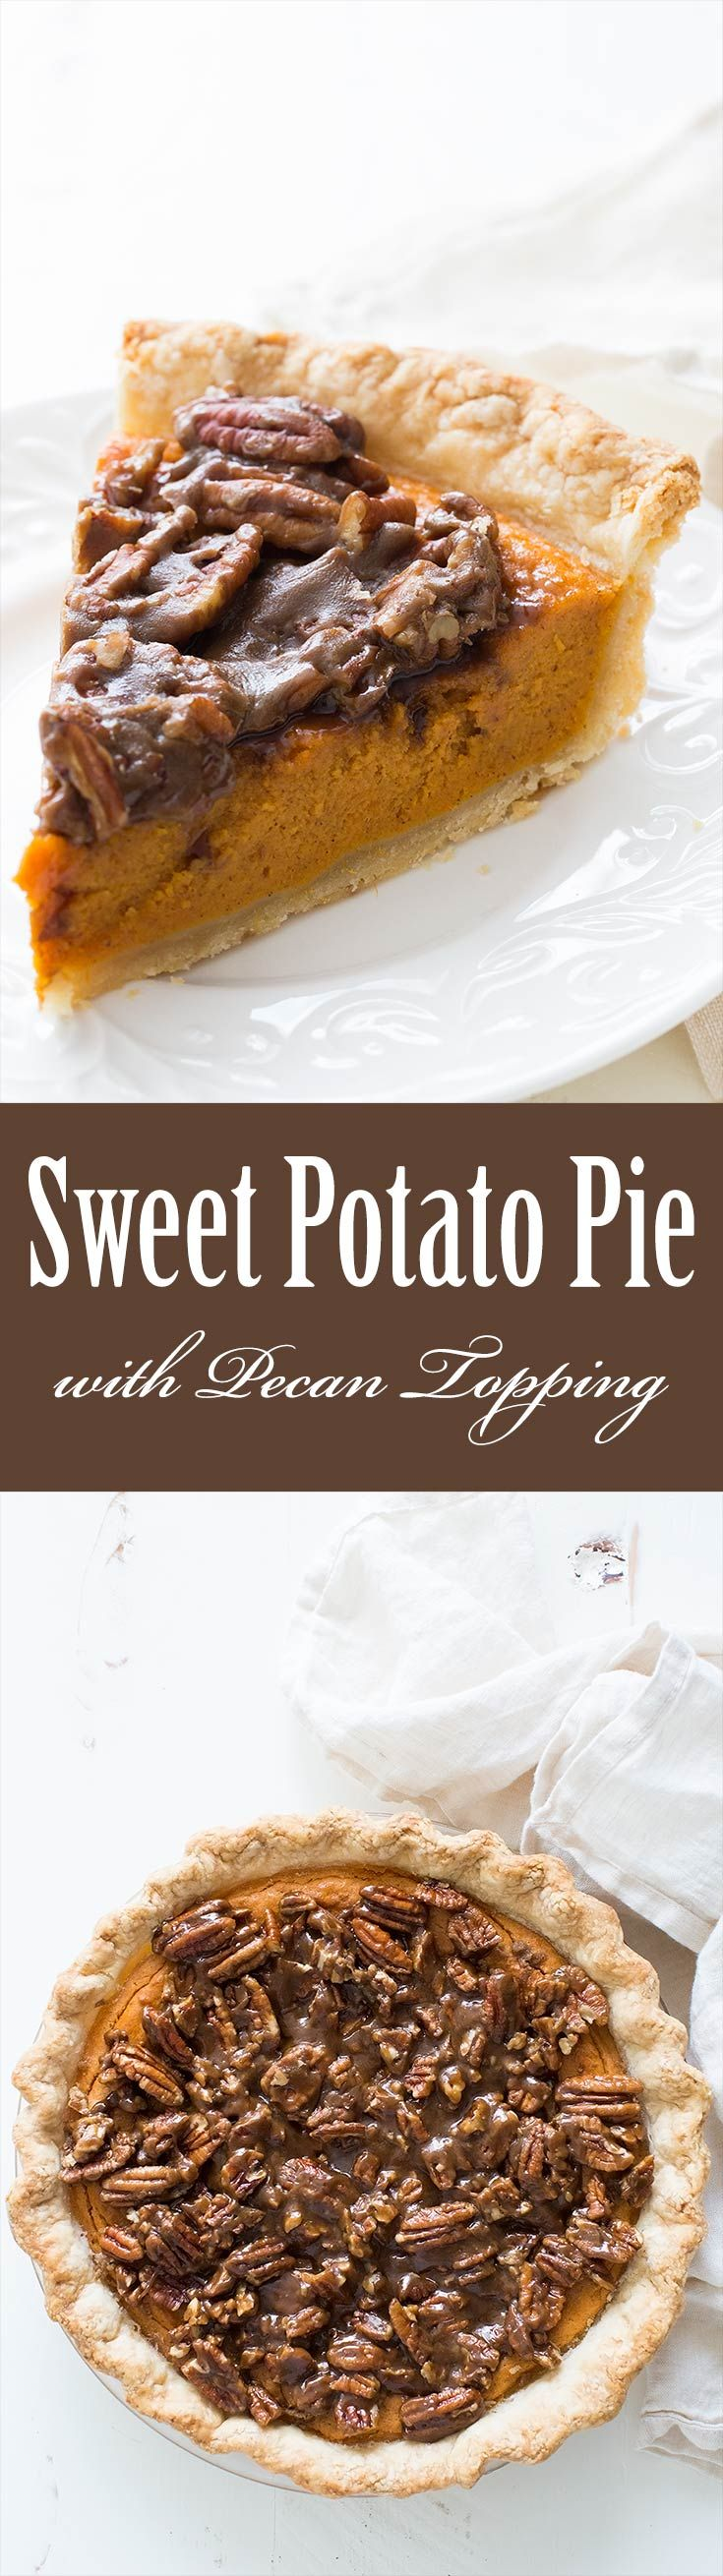 Sweet Potato Pie With Pecan Topping Simplyrecipes Com Recipe Sweet Potato Pie Pecan Topping Recipe Holiday Sweet Potato